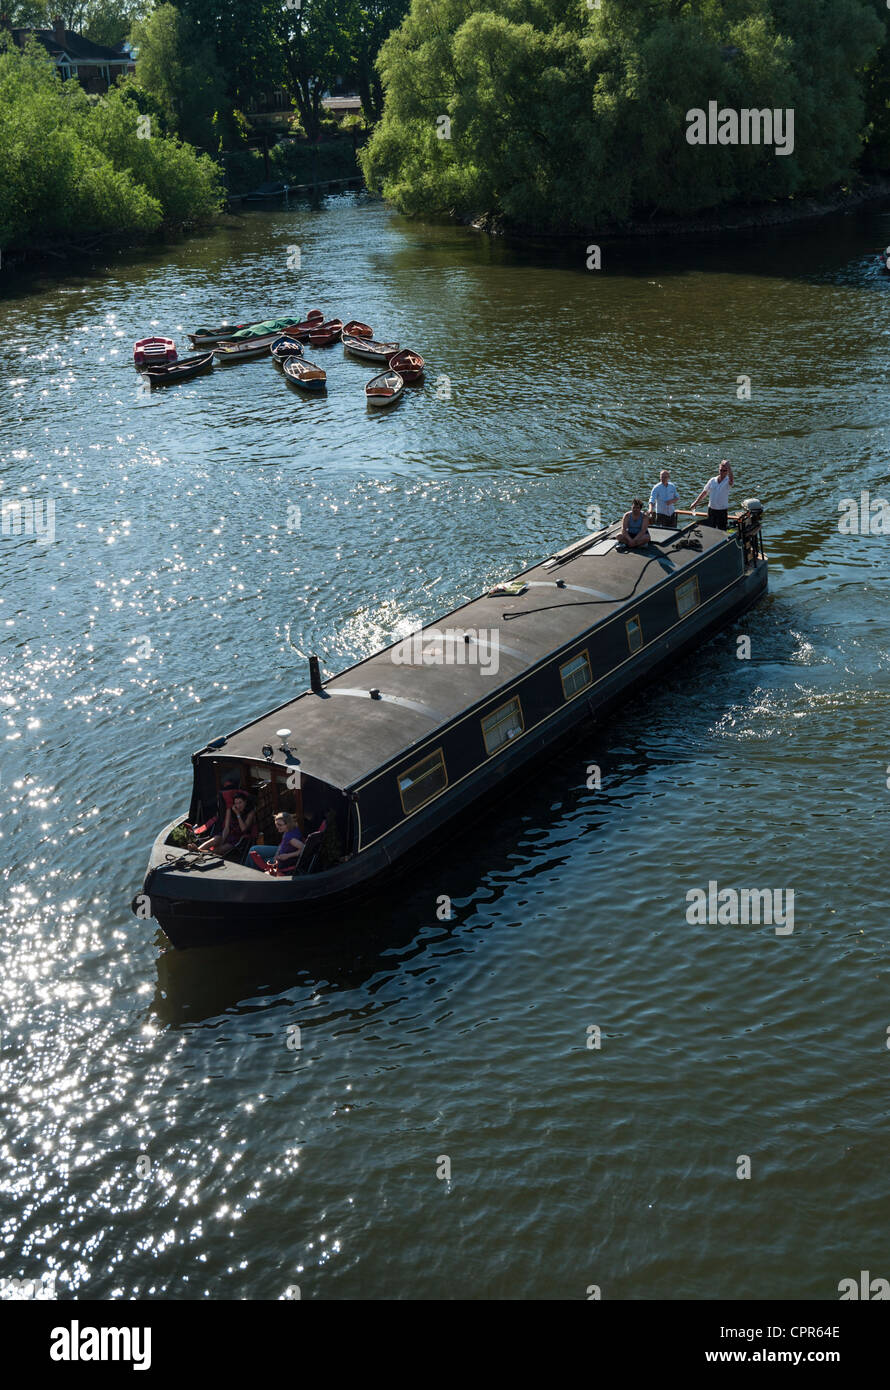 A long boat or barge and boats on the River Thames at Richmond London UK on a sunny summer day. Stock Photo